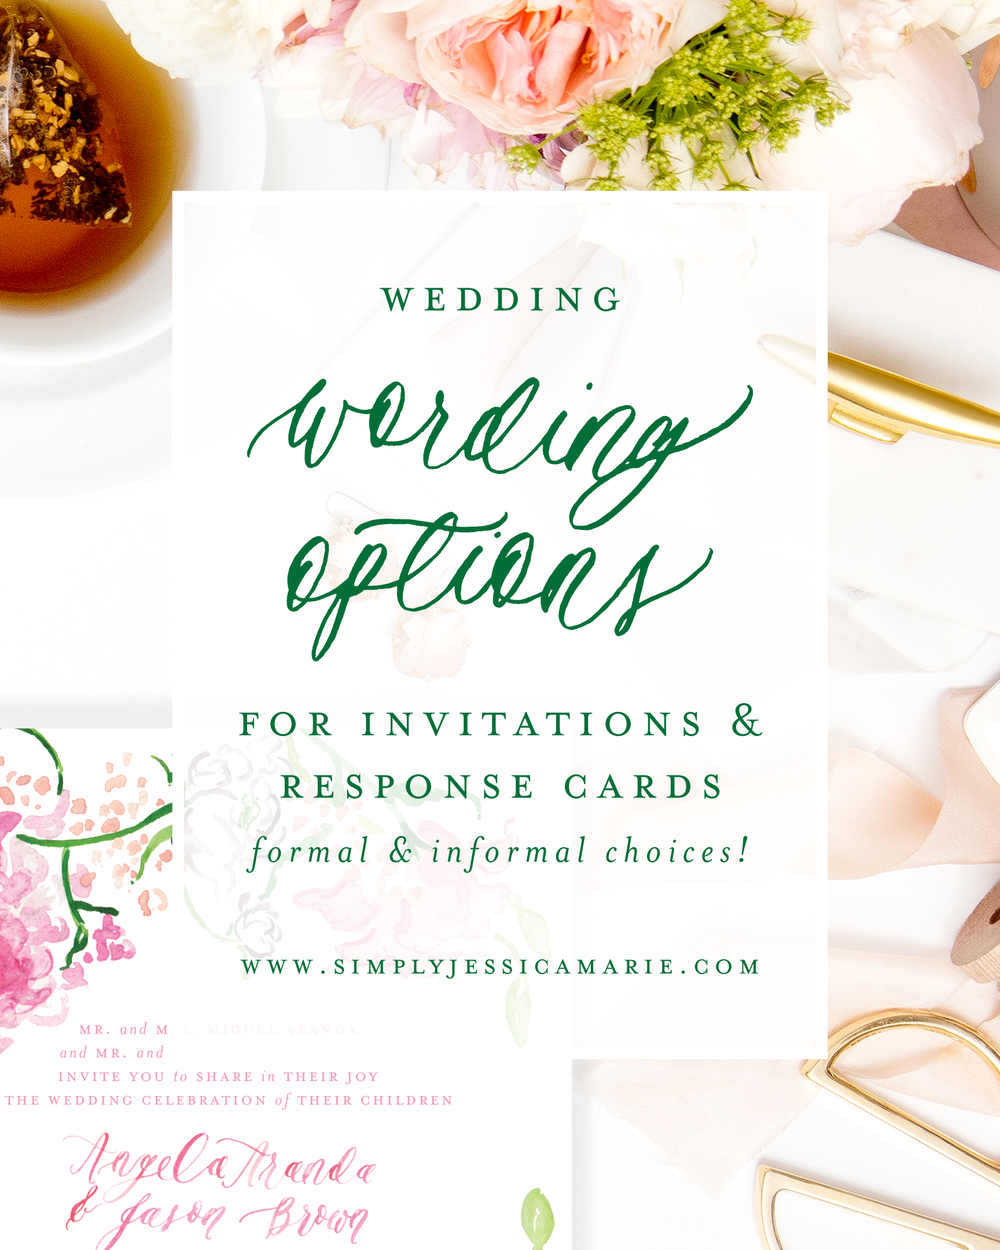 Wording Options for Wedding Invitations Simply Jessica Marie